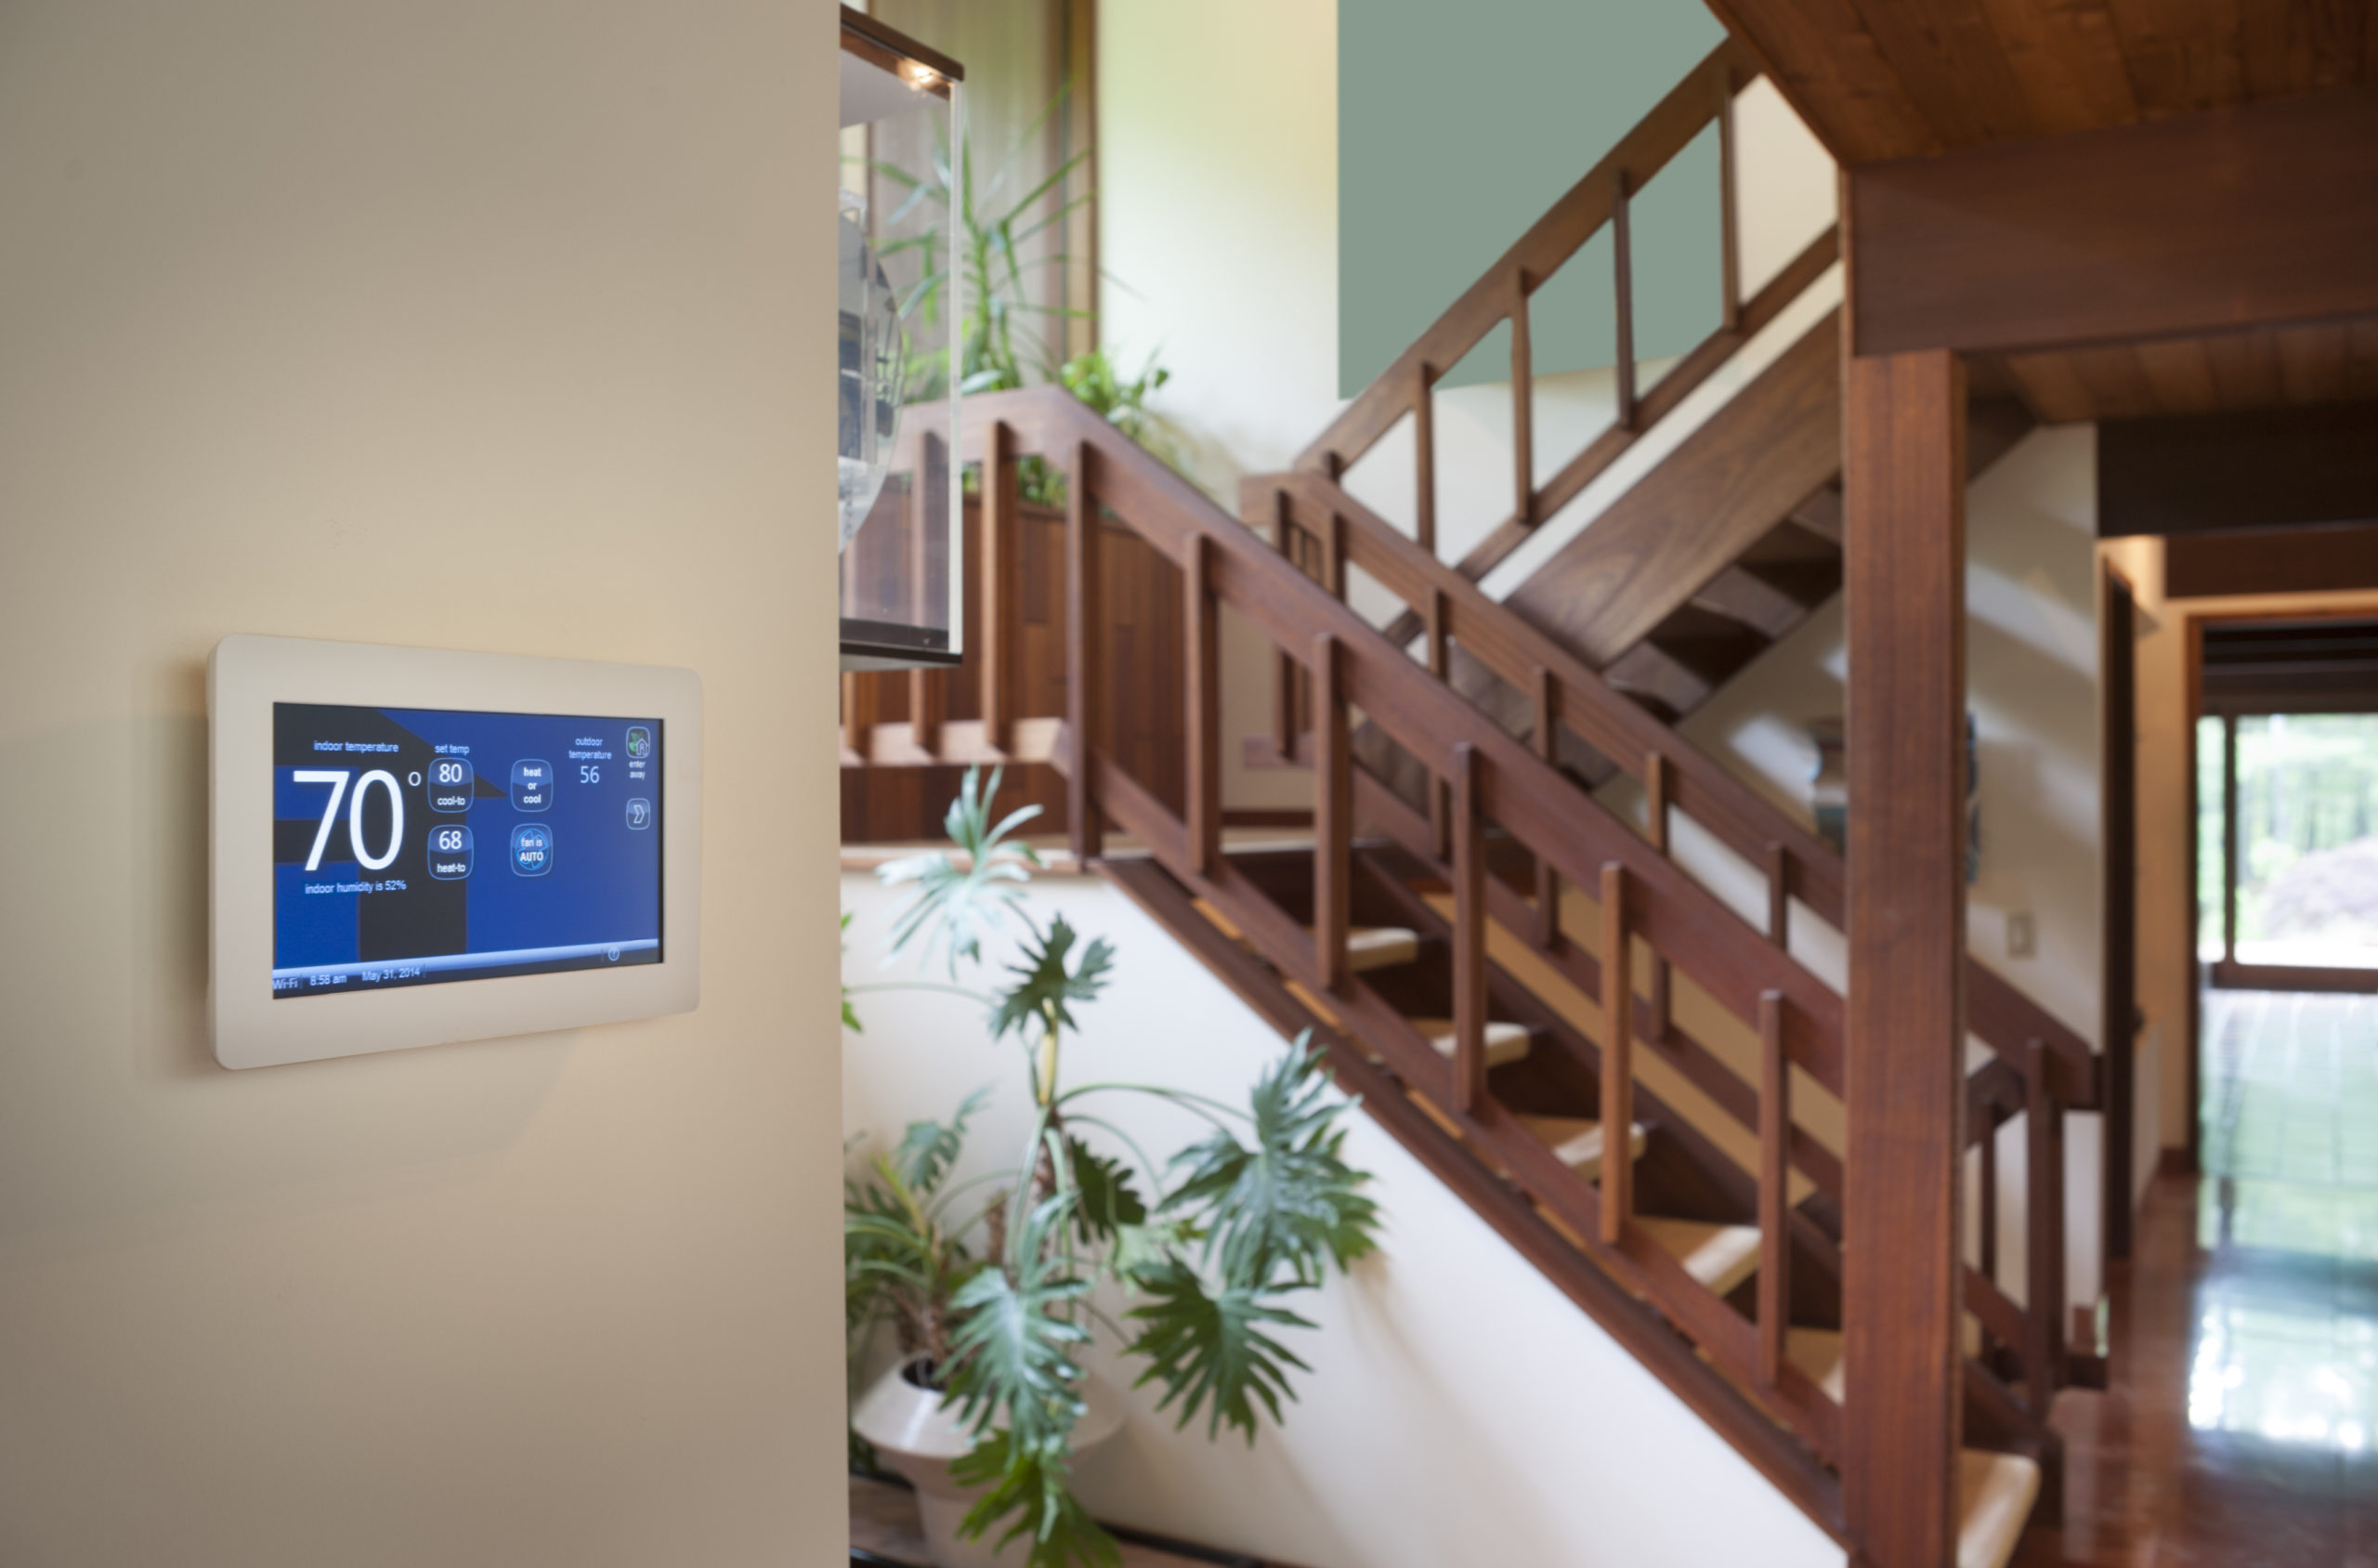 Programmable-Thermostat-Winter-Save-Energy